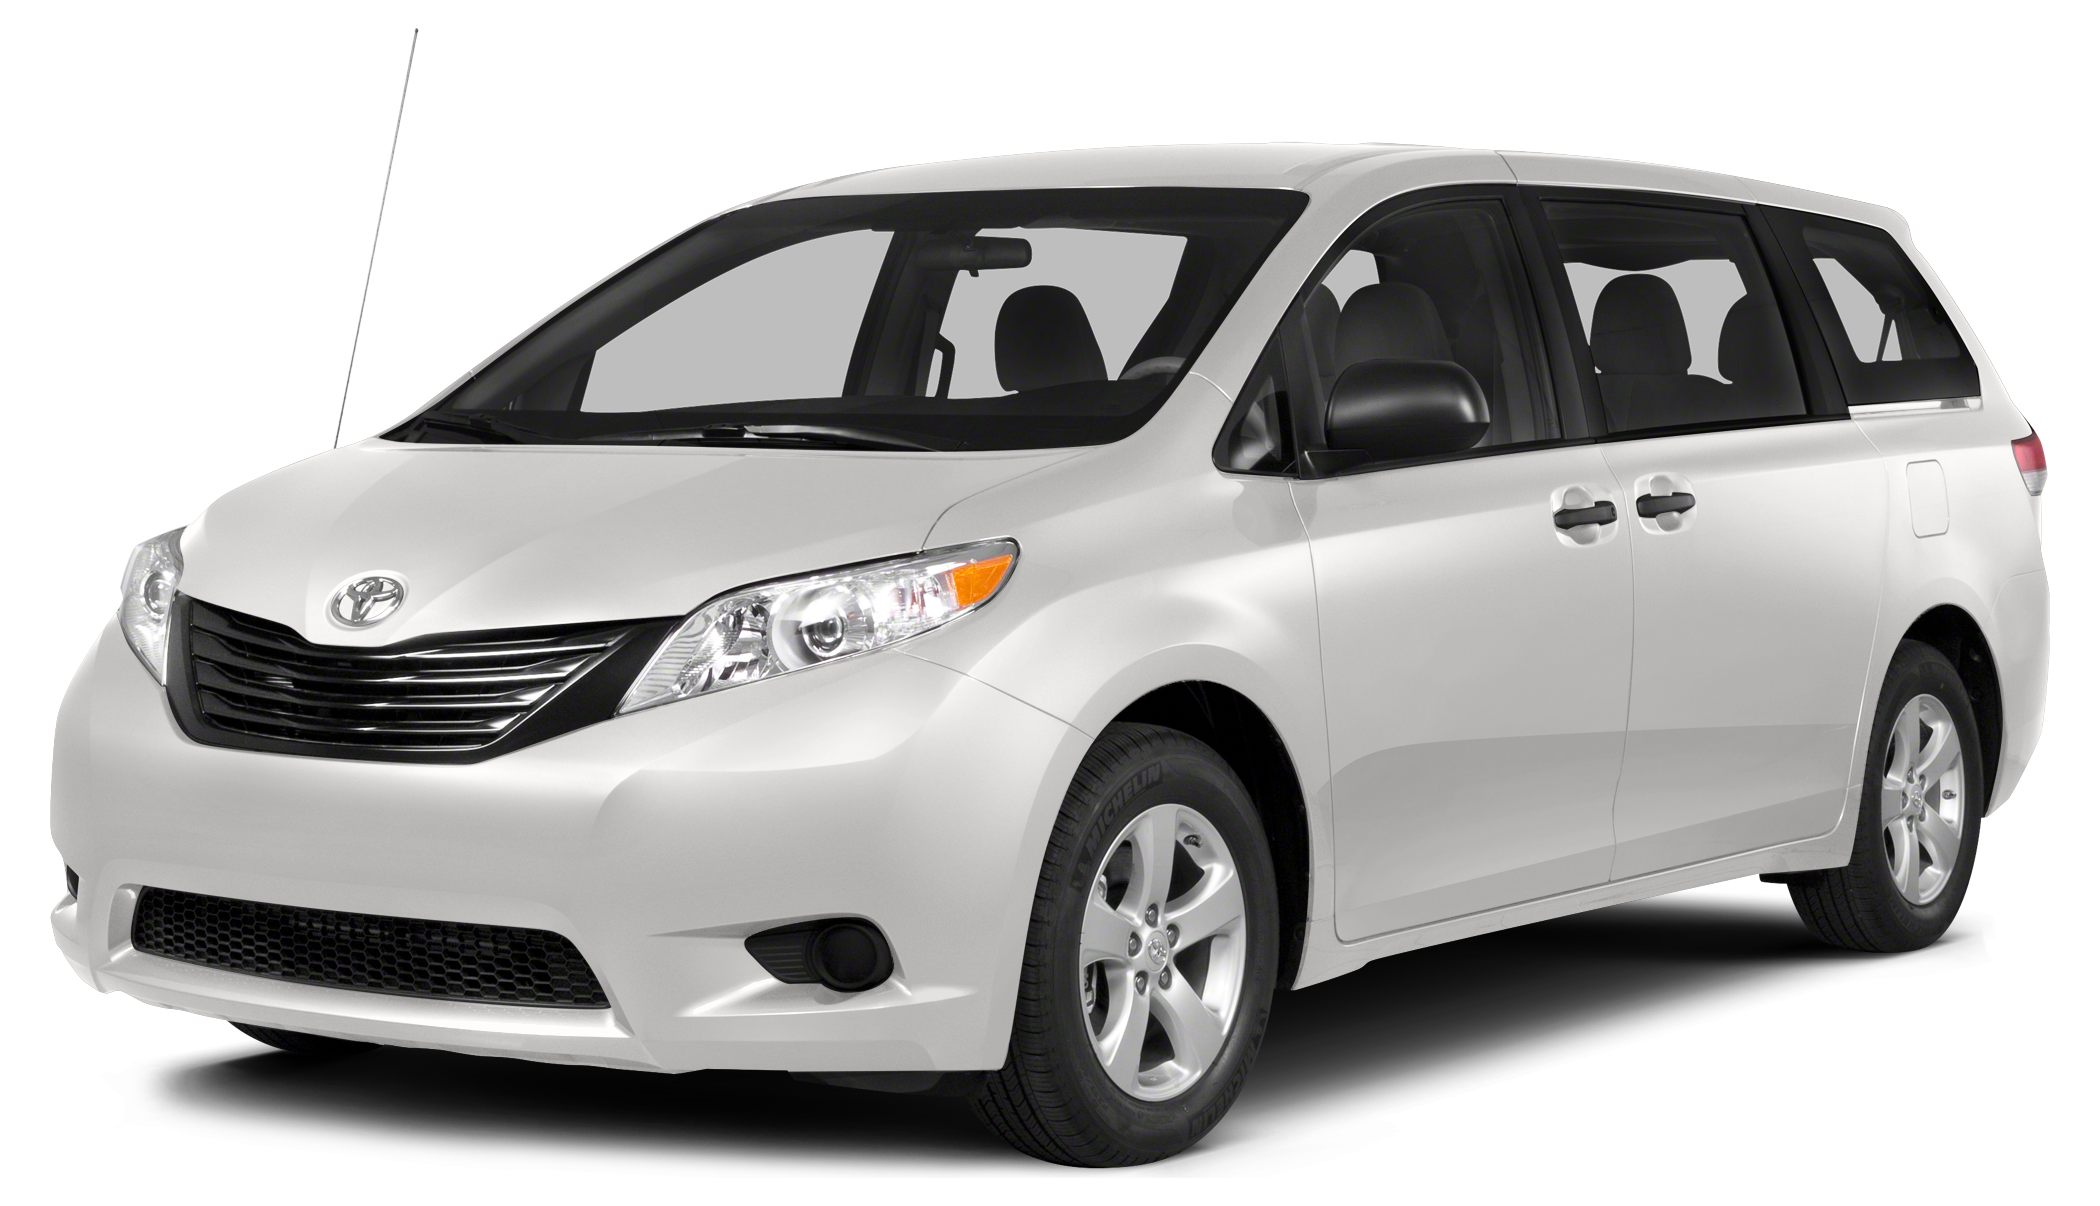 2014 Toyota Sienna LE 8 Passenger EPA 25 MPG Hwy18 MPG City CARFAX 1-Owner LOW MILES - 35654